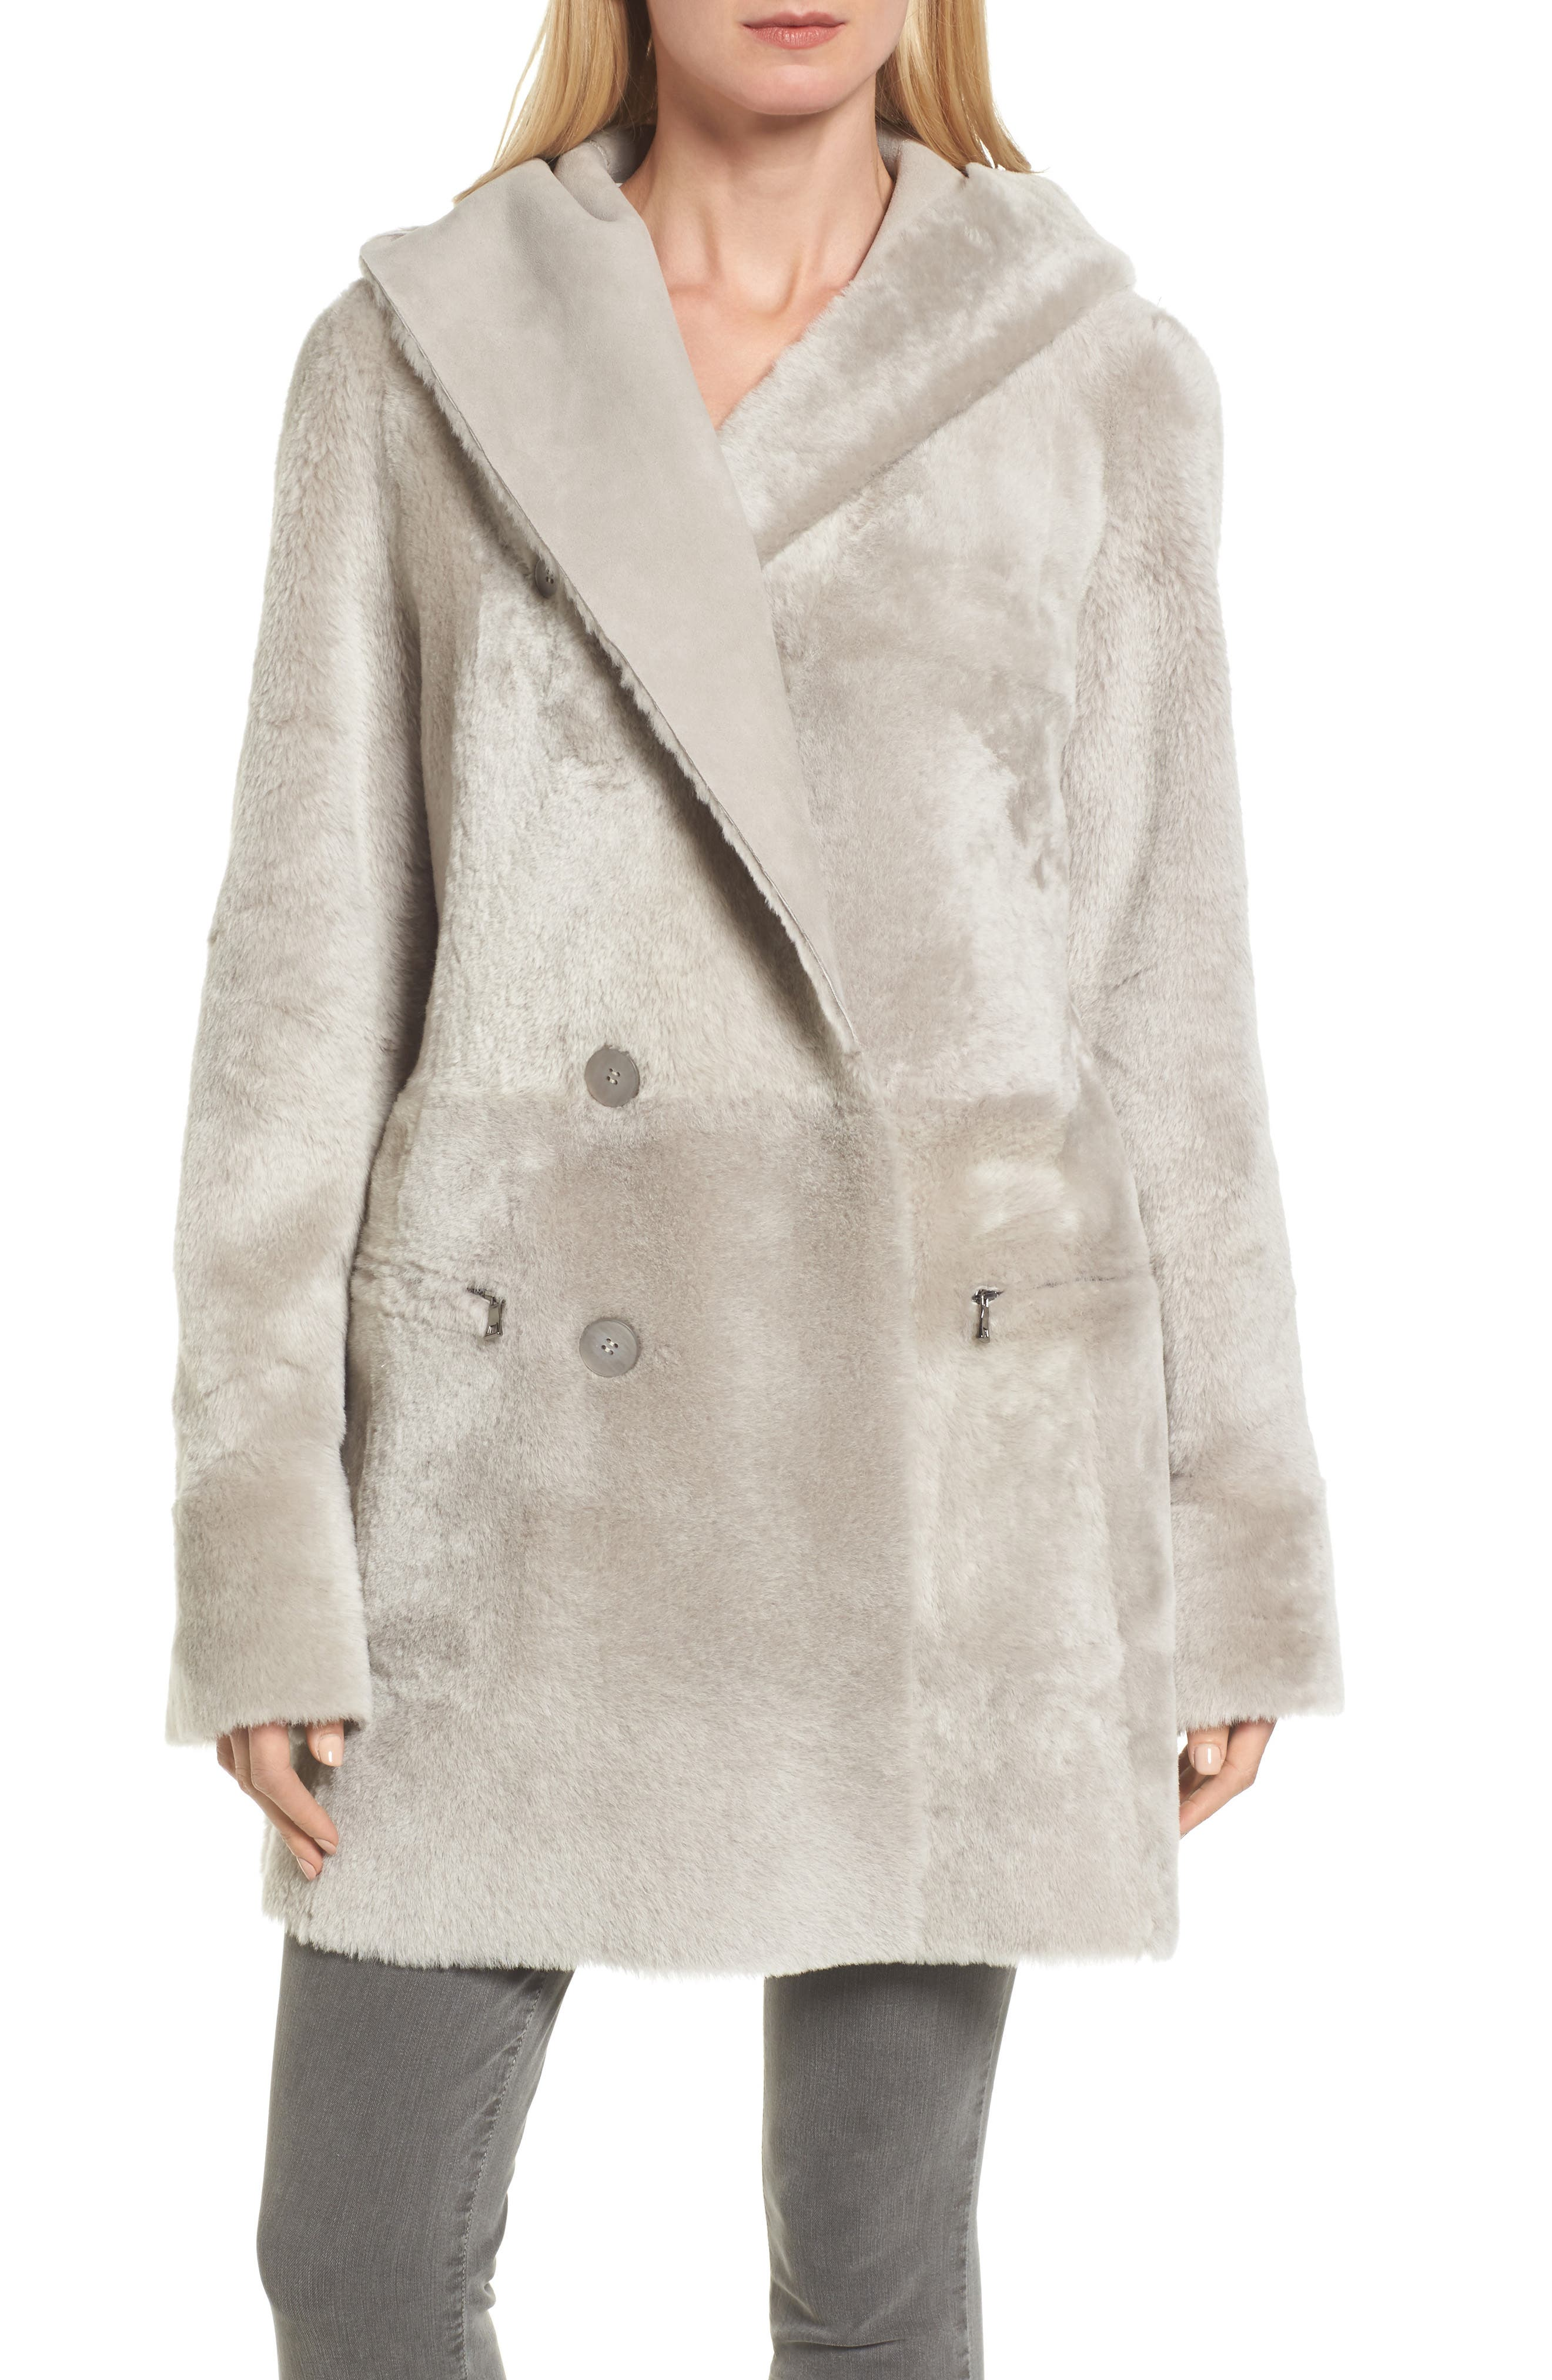 Patch Genuine Shearling Coat,                             Alternate thumbnail 4, color,                             050